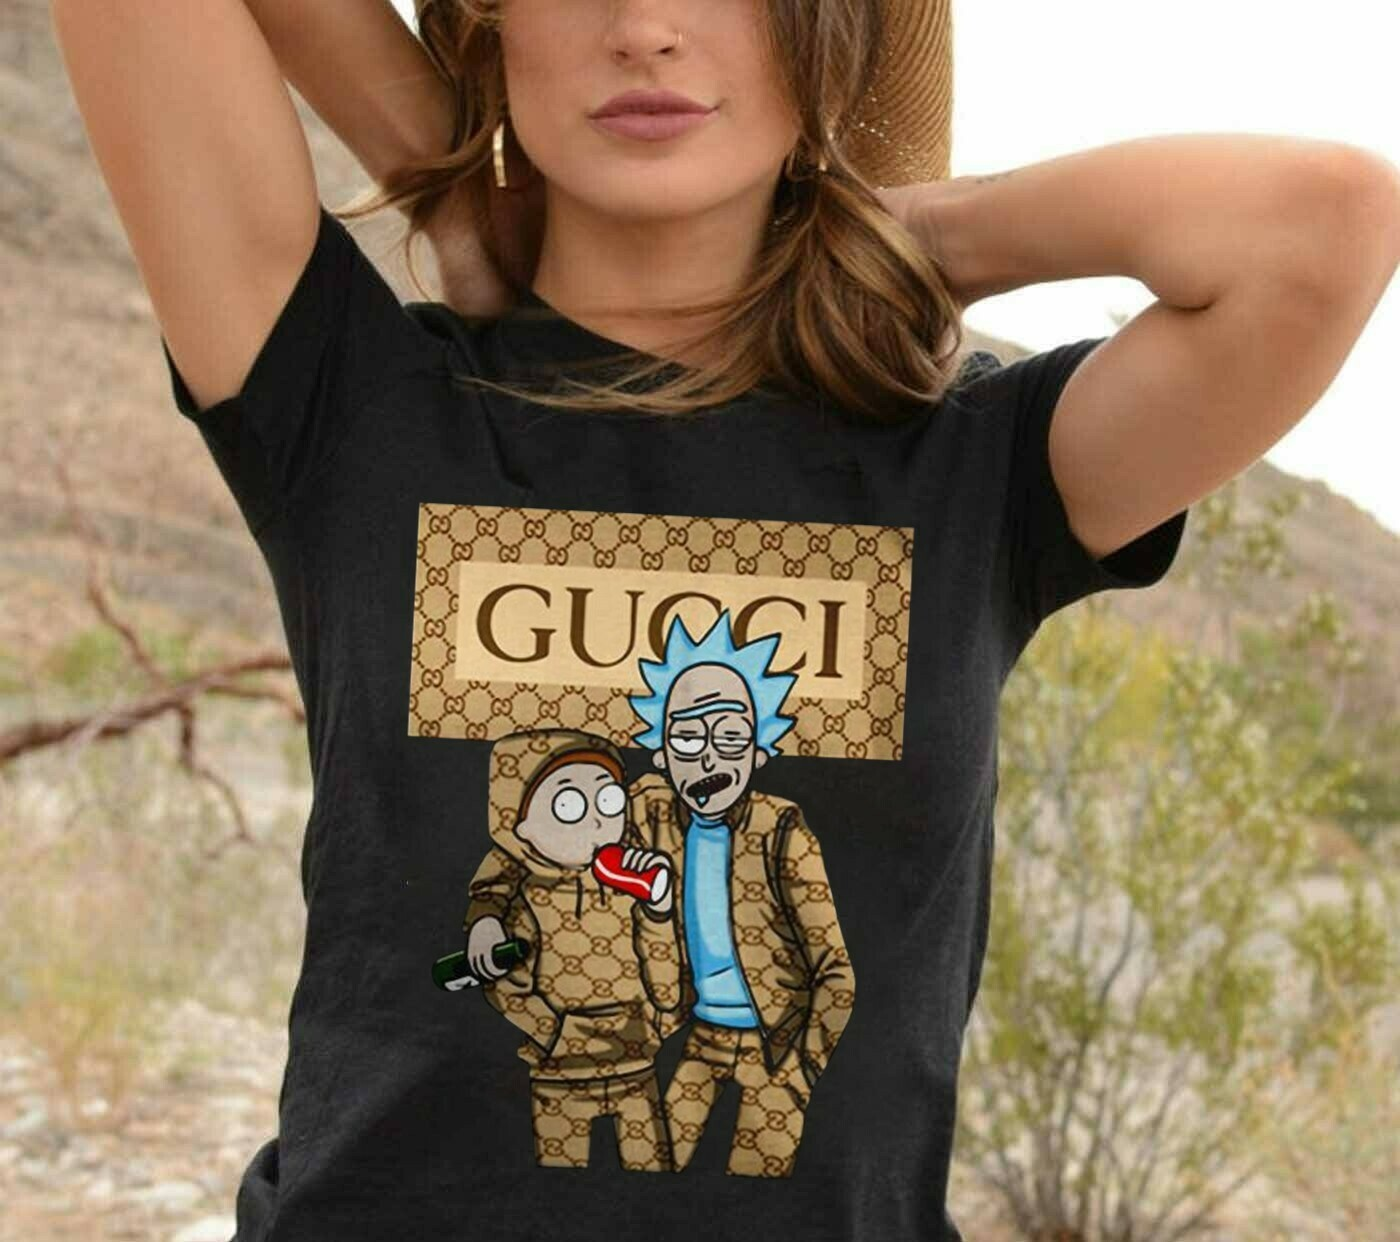 Rick and Morty Gucci Mashup,Friends Rick and Morty On Cartoon Network Drink Wine,Funny Gucci Style Family s T-Shirt Sweatshirt Hoodie Long Sleeve Tee Kids Youth Gifts Jolly Family Gifts